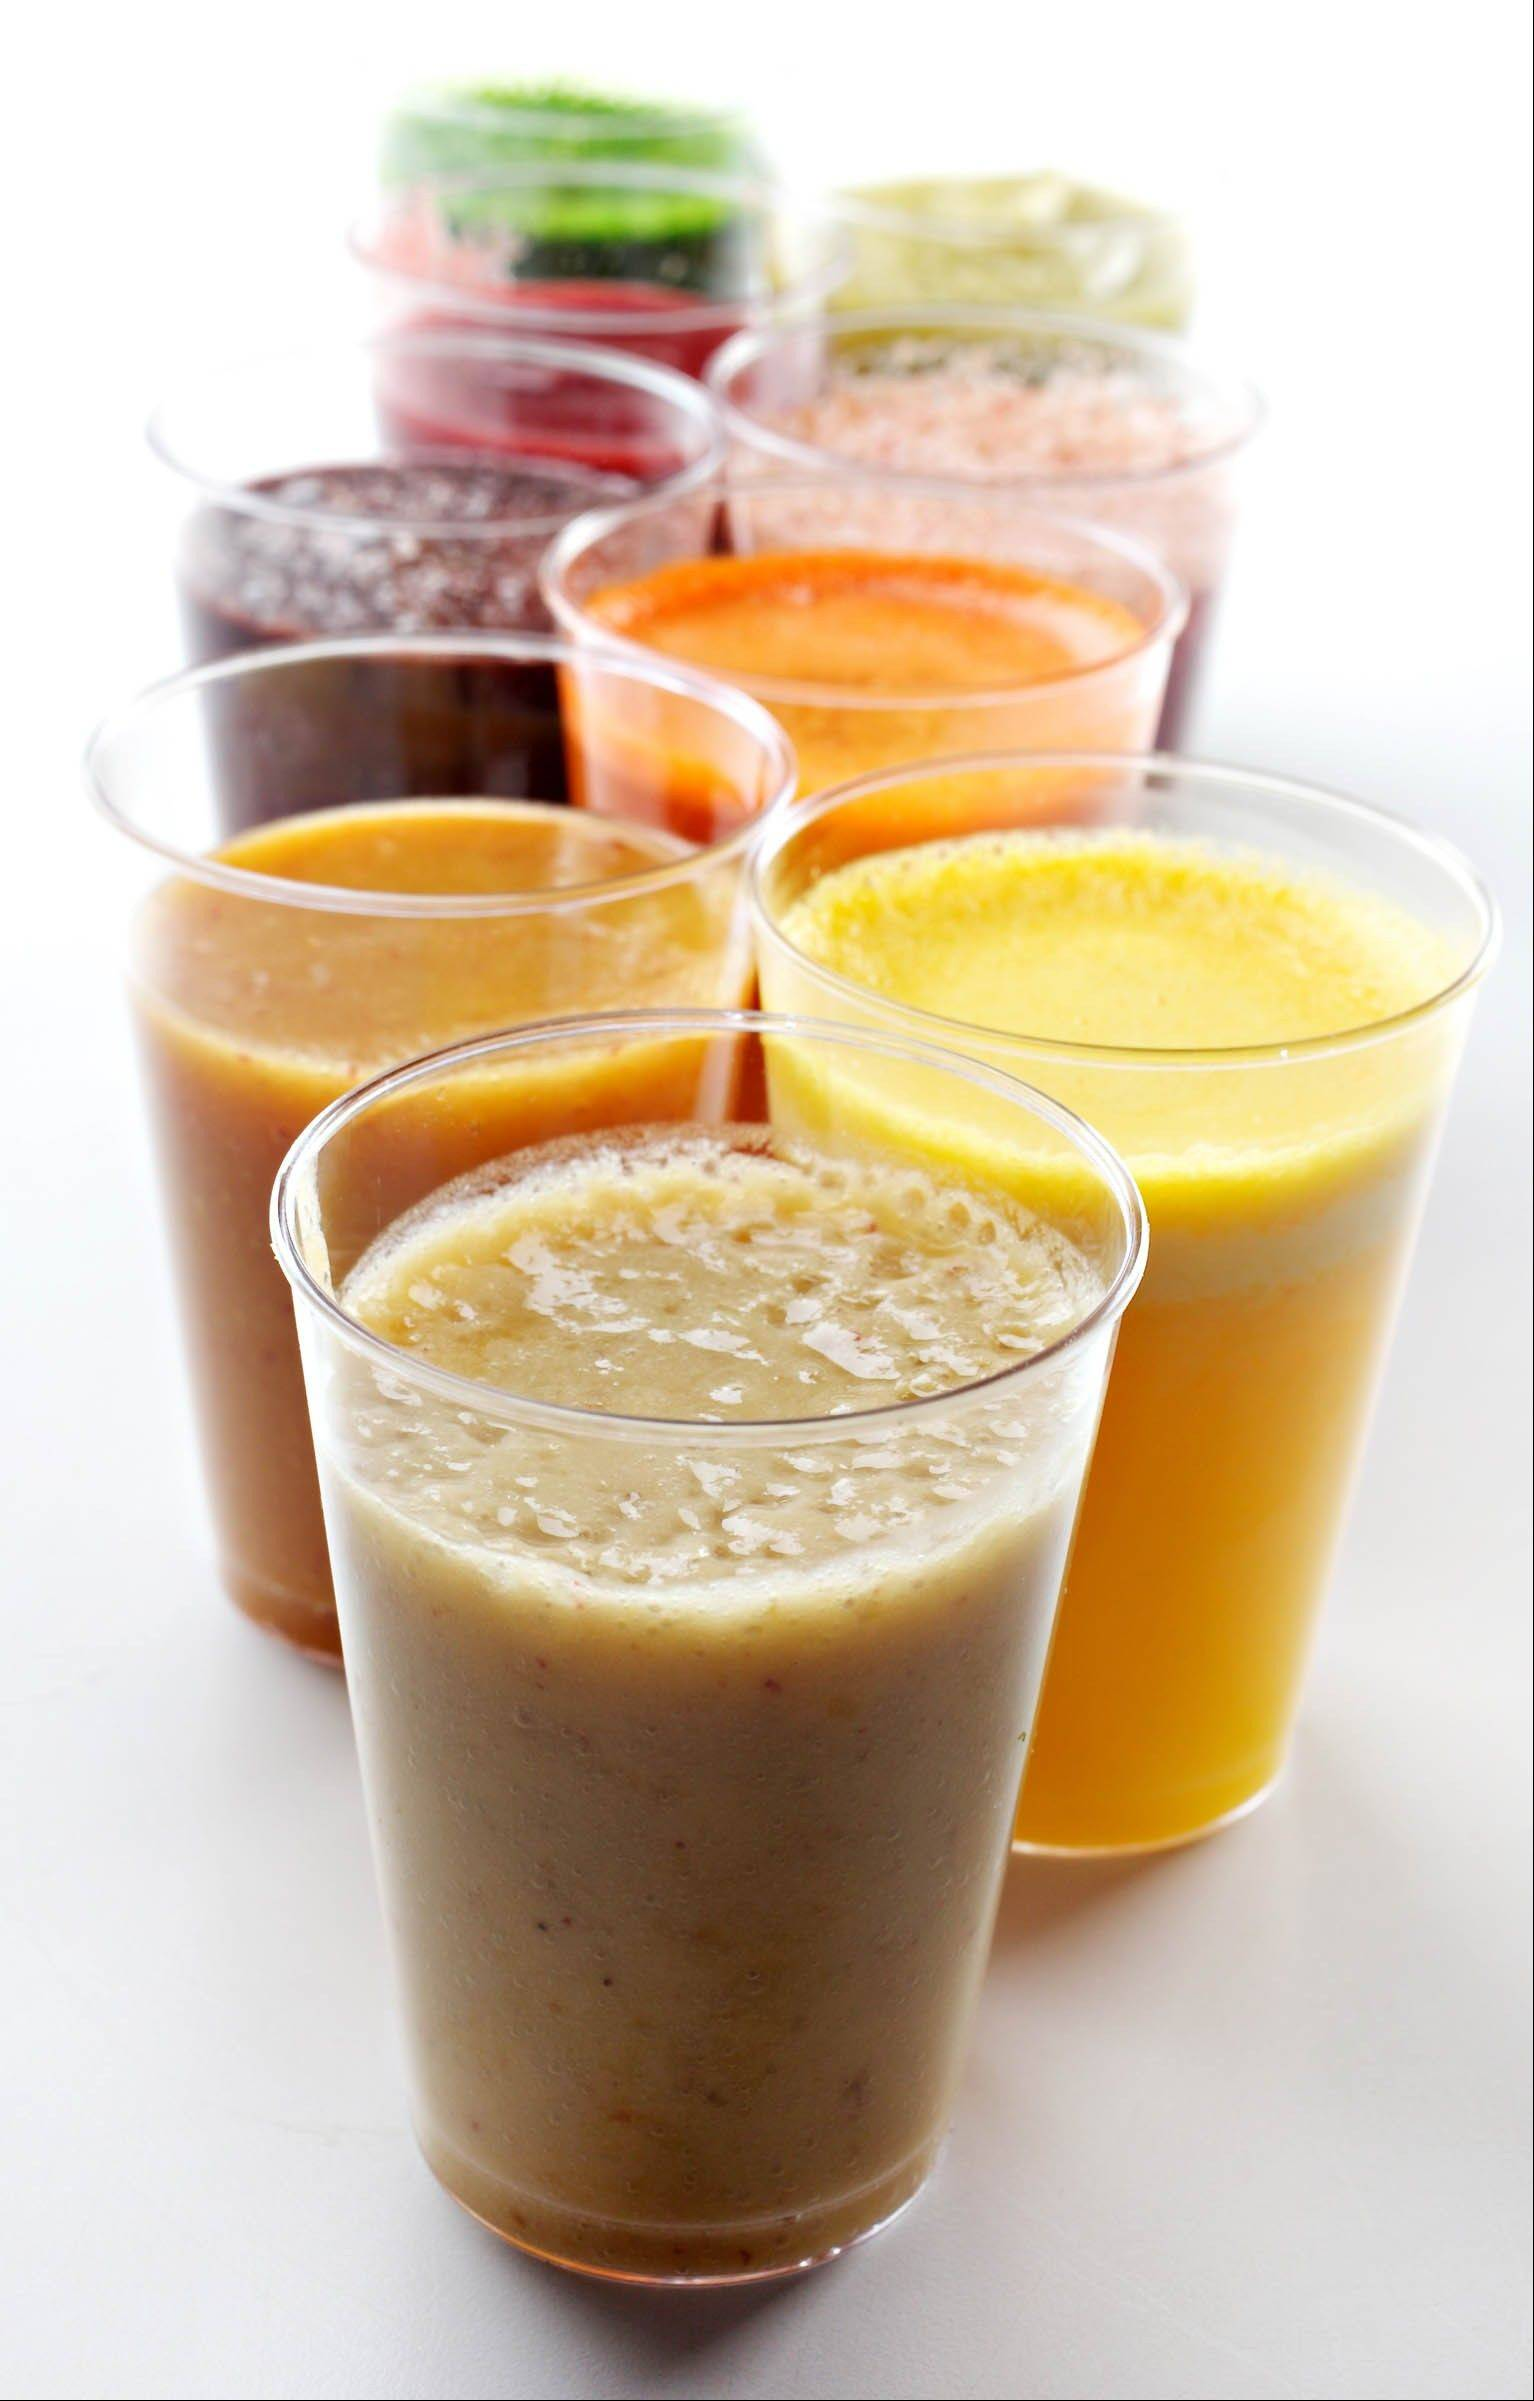 Juicer or blender? Either way, a glass of fruits and vegetables is a good way to start the day � and use up what you�ve got in the refrigerator.